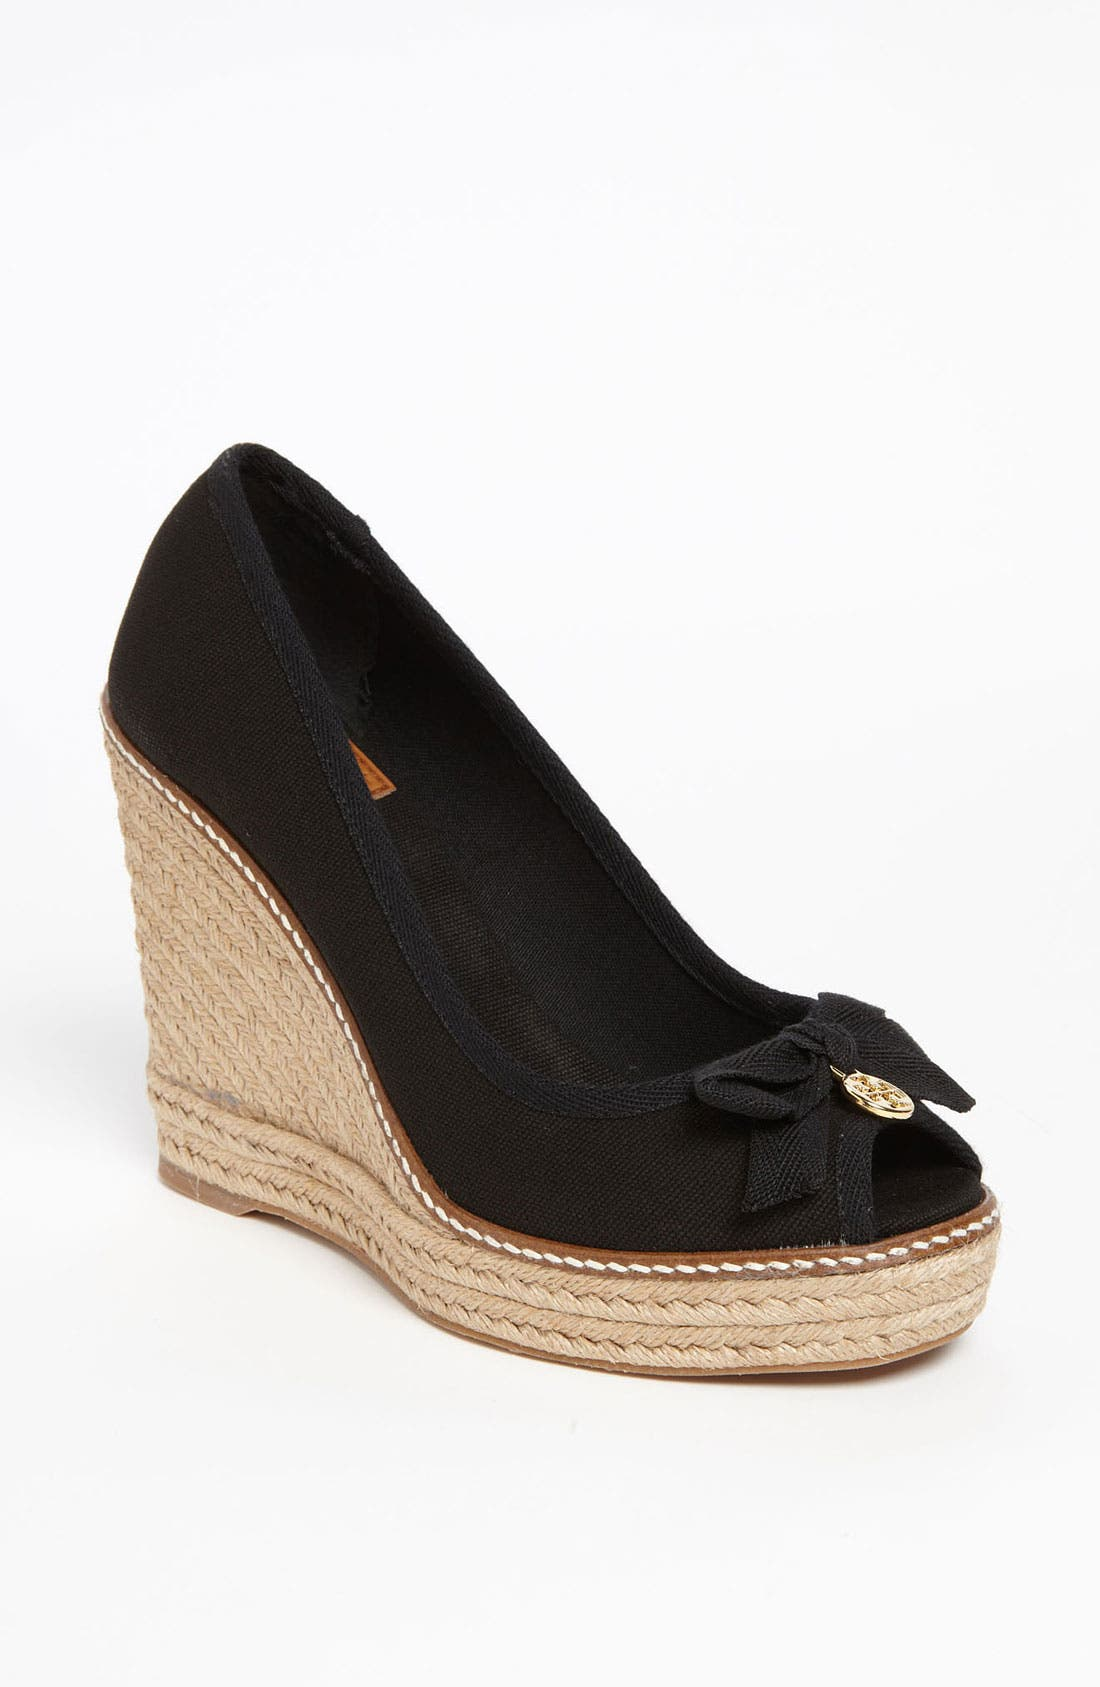 Alternate Image 1 Selected - Tory Burch 'Jackie' Wedge